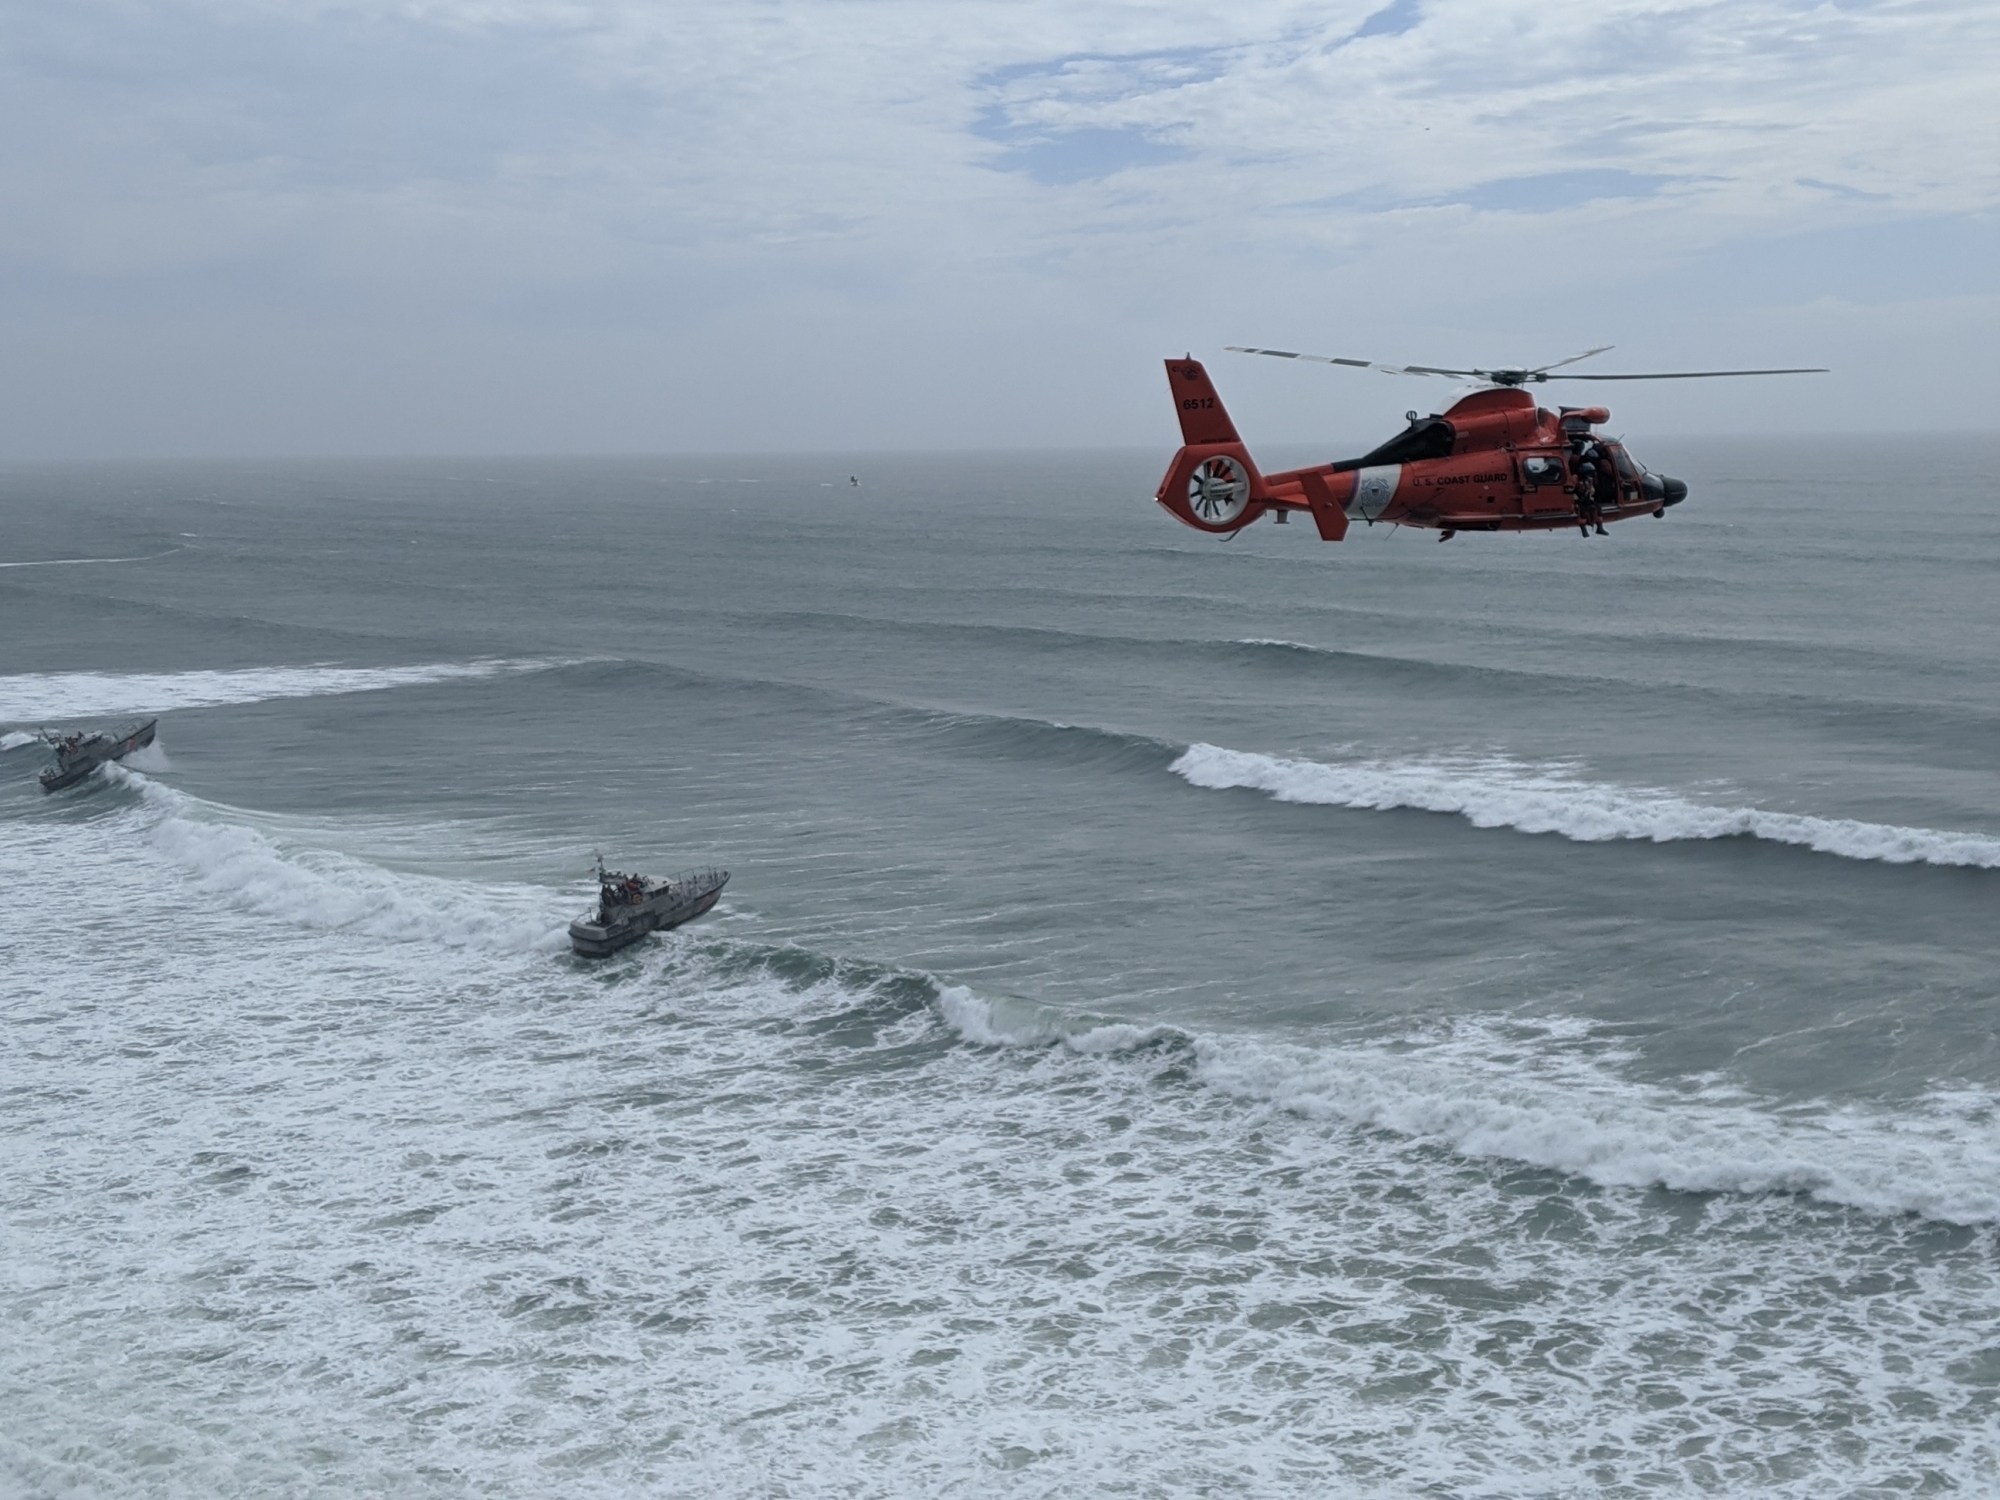 An aircrew aboard an MH-65 Dolphin helicopter from Air Facility Newport arrives on scene during the rescue of seven people trapped on the cliffs near Yaquina Head, Ore., May 29, 2020. Two Station Yaquina Bay boatcrews aboard 47-foot Motor Lifeboats were positioned offshore as a contingency. (Petty Officer 2nd Class Michael Martini/Coast Guard)